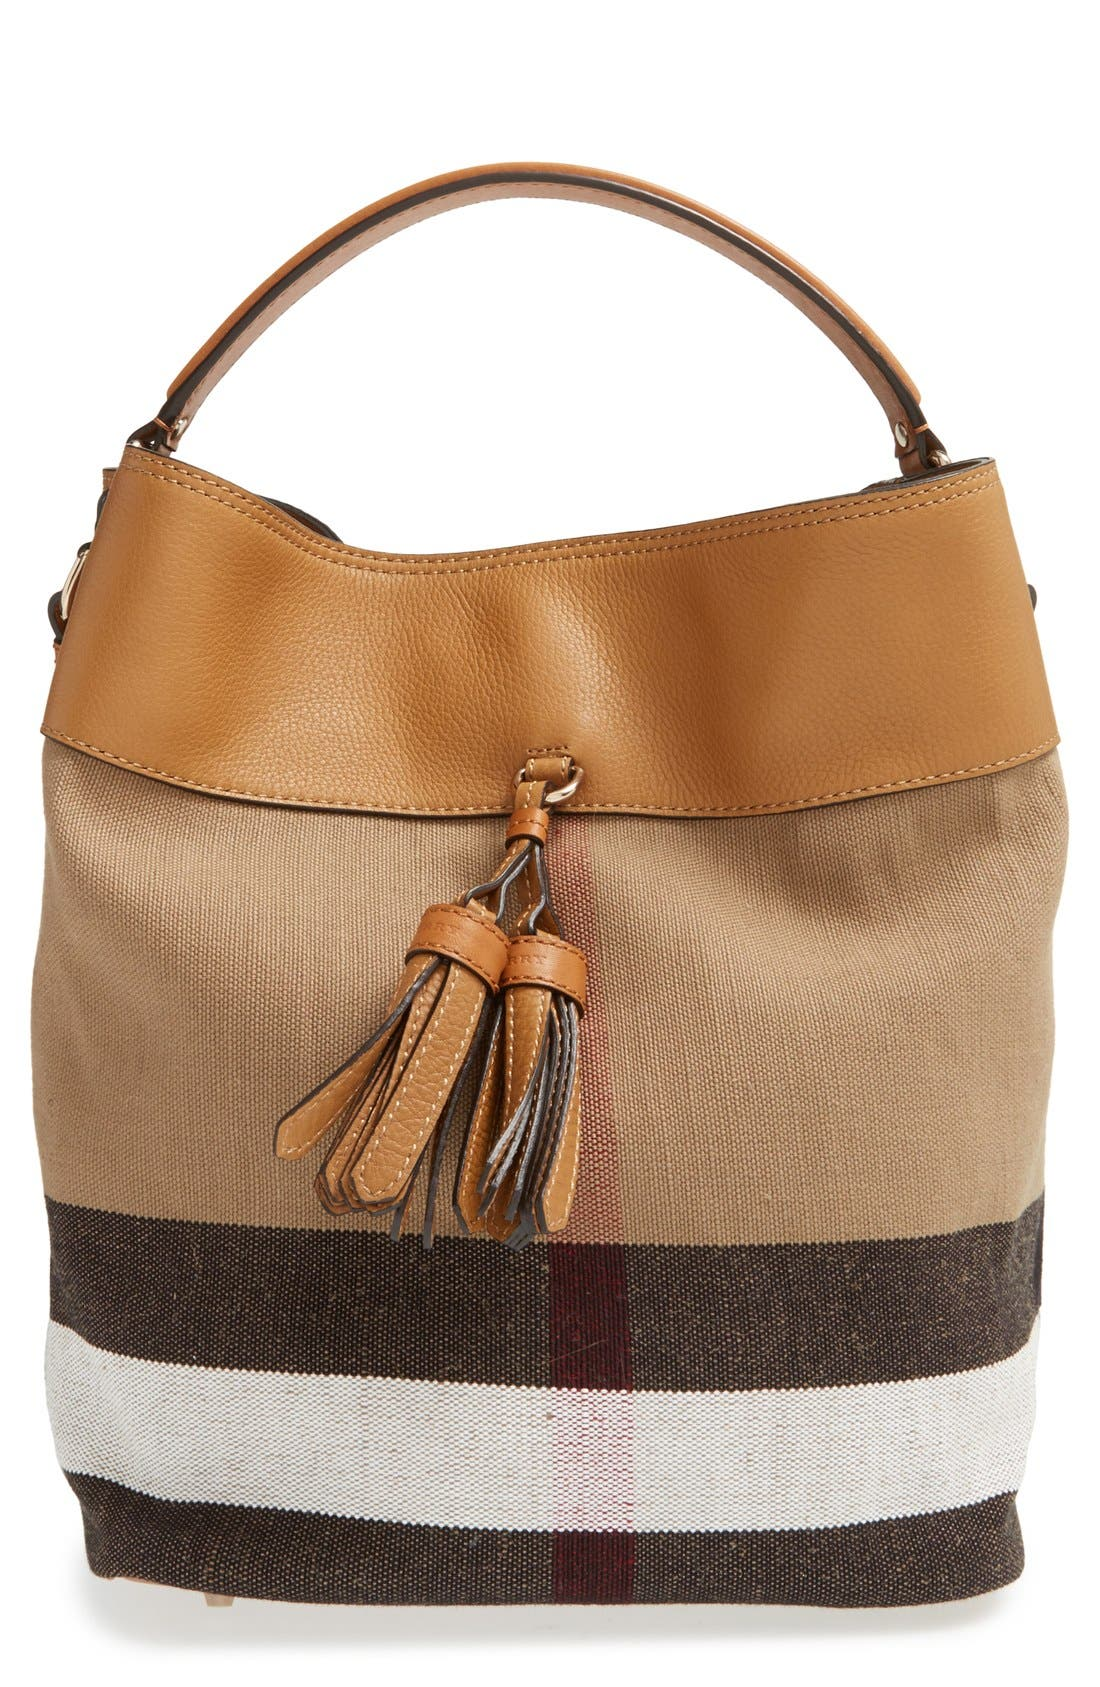 Burberry Medium Ashby Bucket Bag